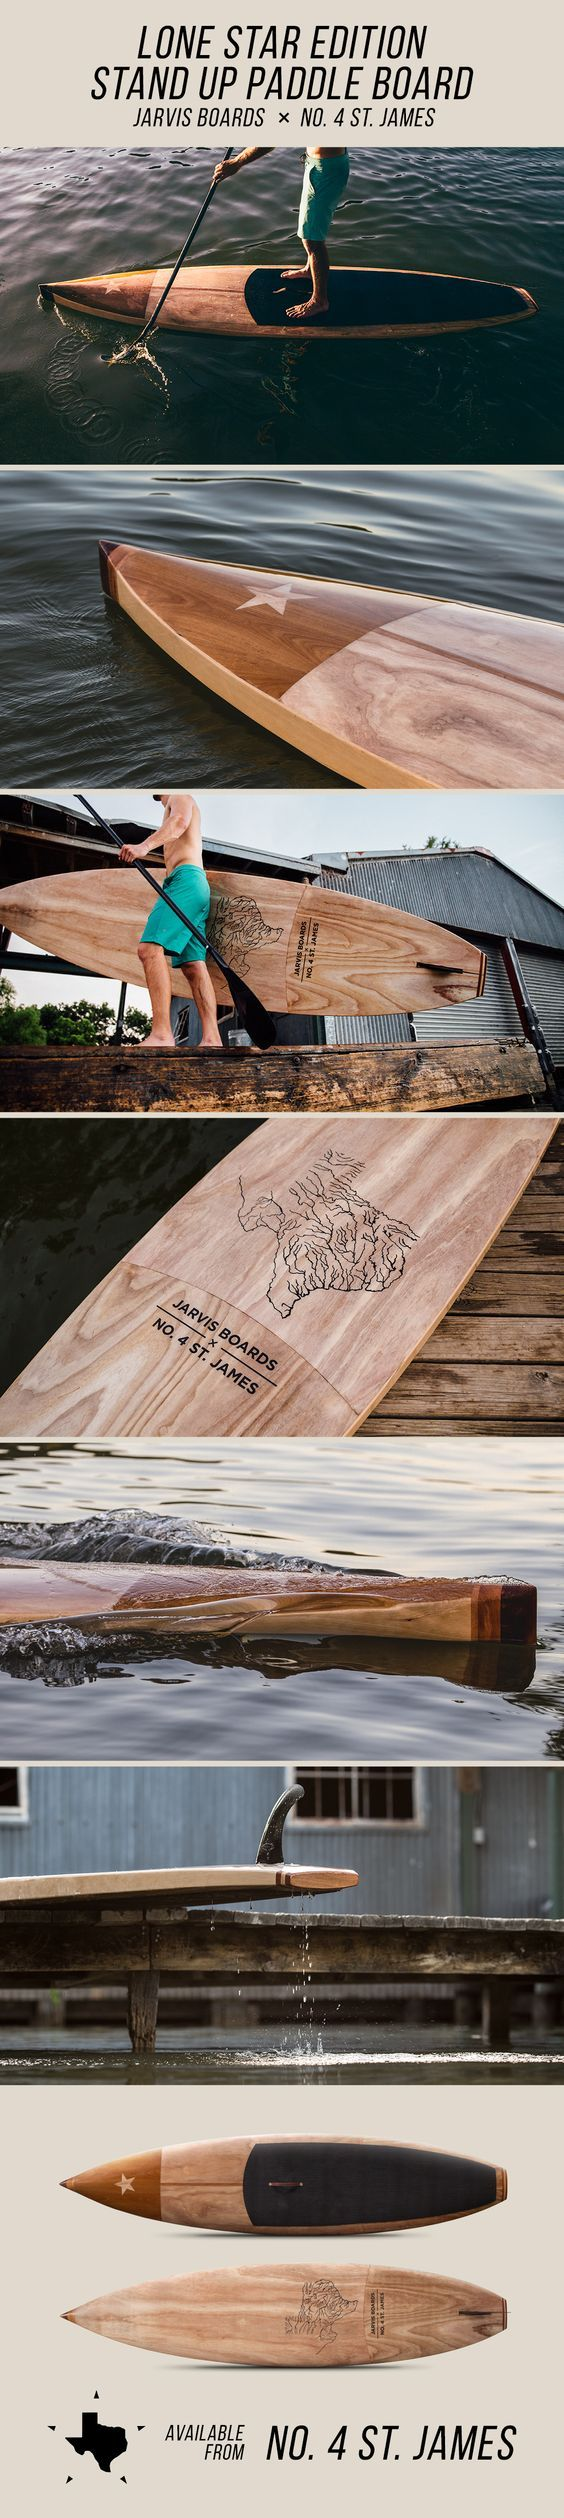 The Lone Star Edition Stand Up Paddle Board, an exclusive collaboration between handmade wooden board brand Jarvis Boards, and the premiere Texas lifestyle and products brand, No. 4 St. James.: